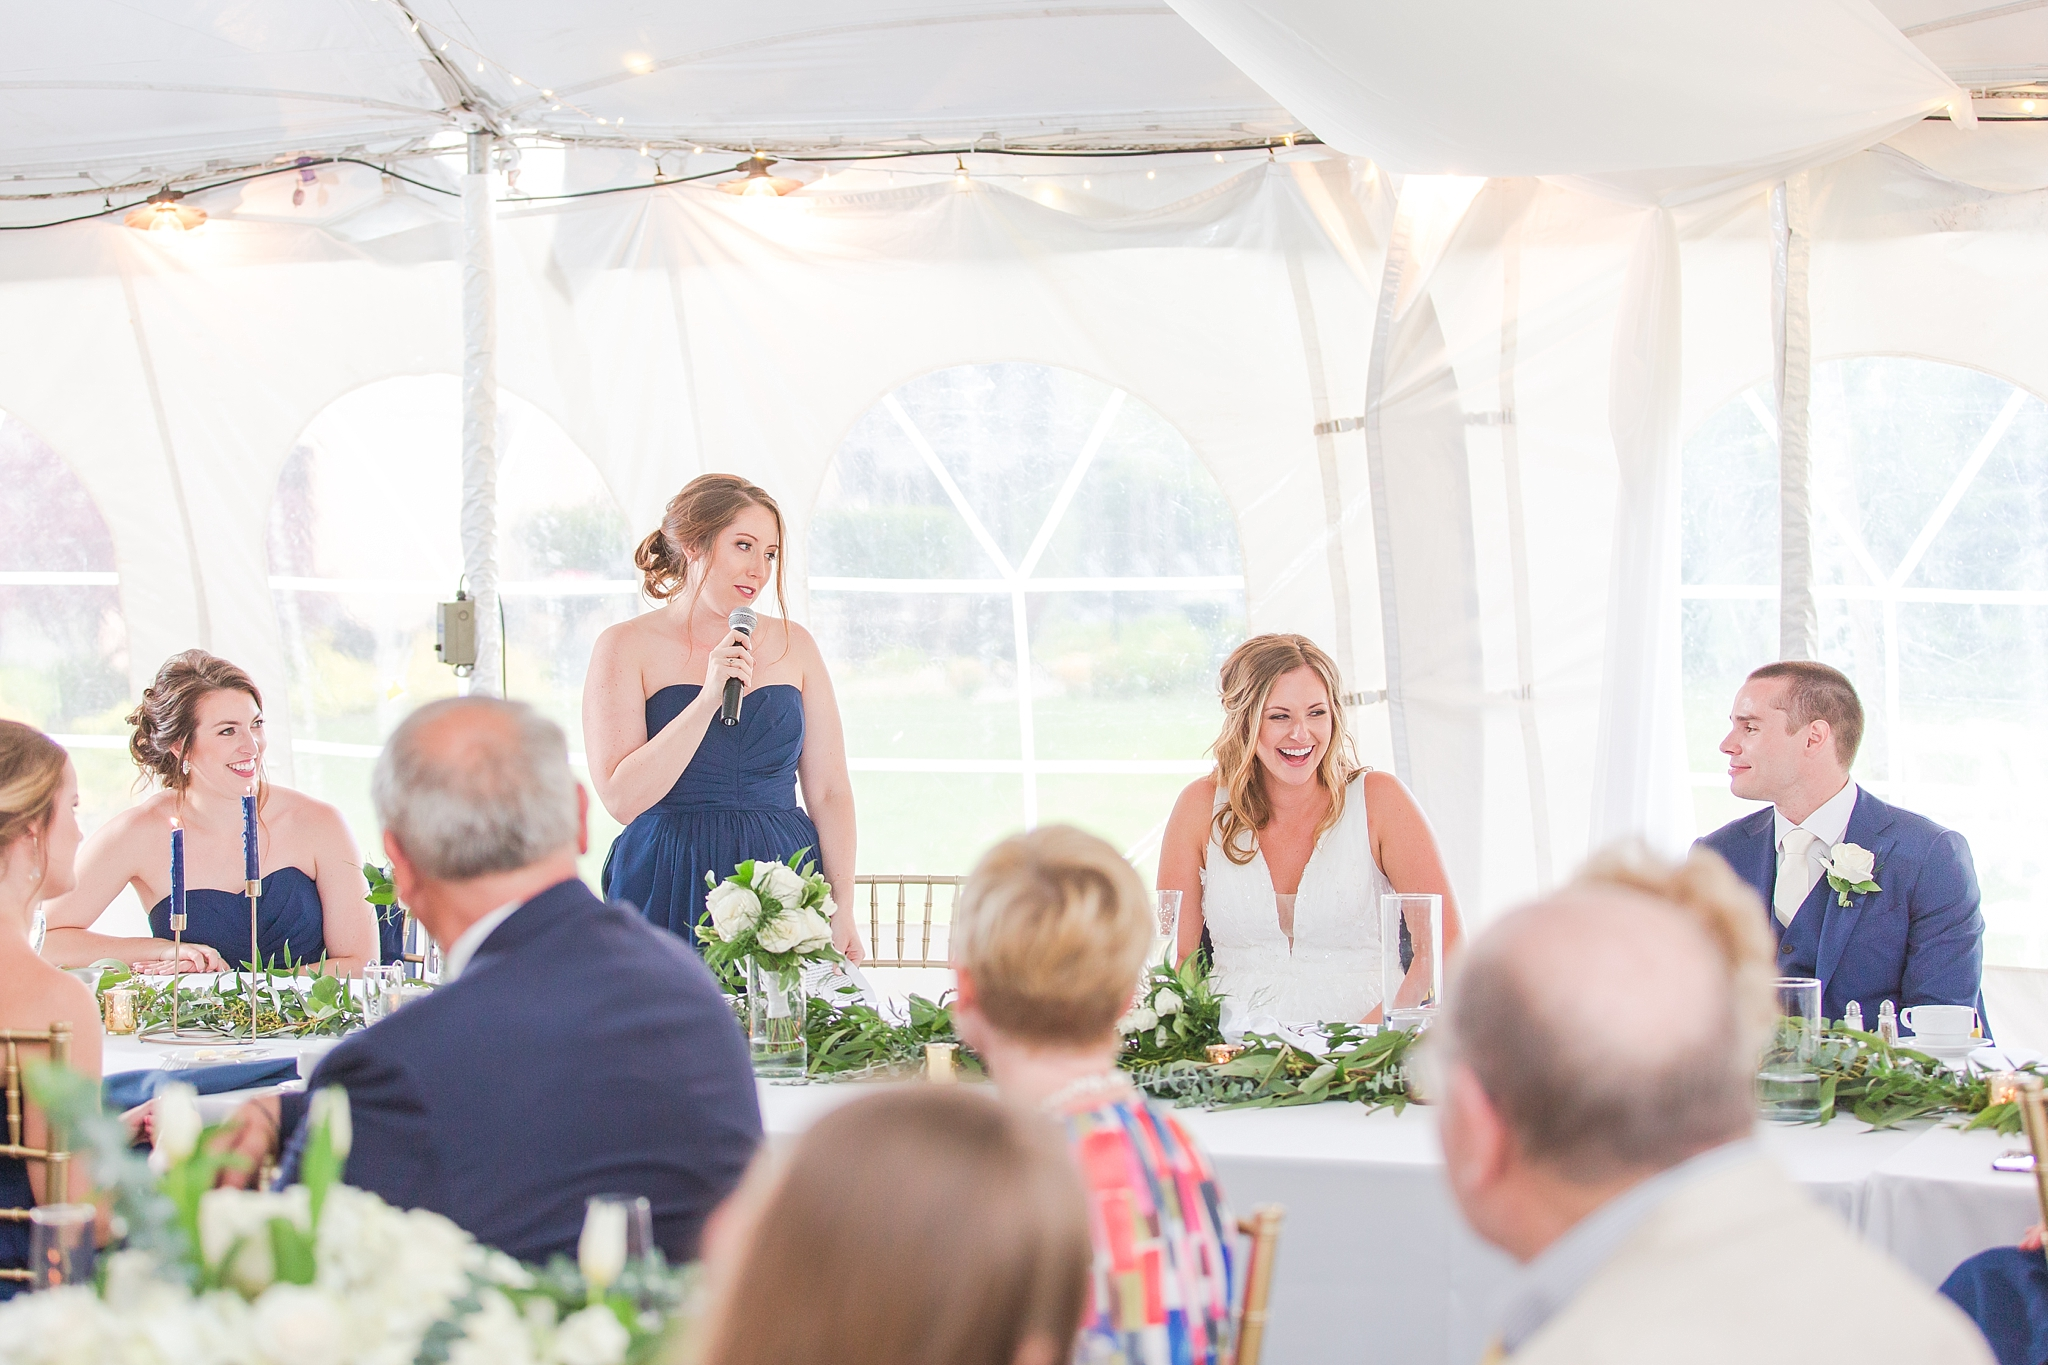 joyful-candid-laid-back-wedding-photos-in-ann-arbor-michigan-and-at-the-eagle-crest-golf-resort-by-courtney-carolyn-photography_0090.jpg